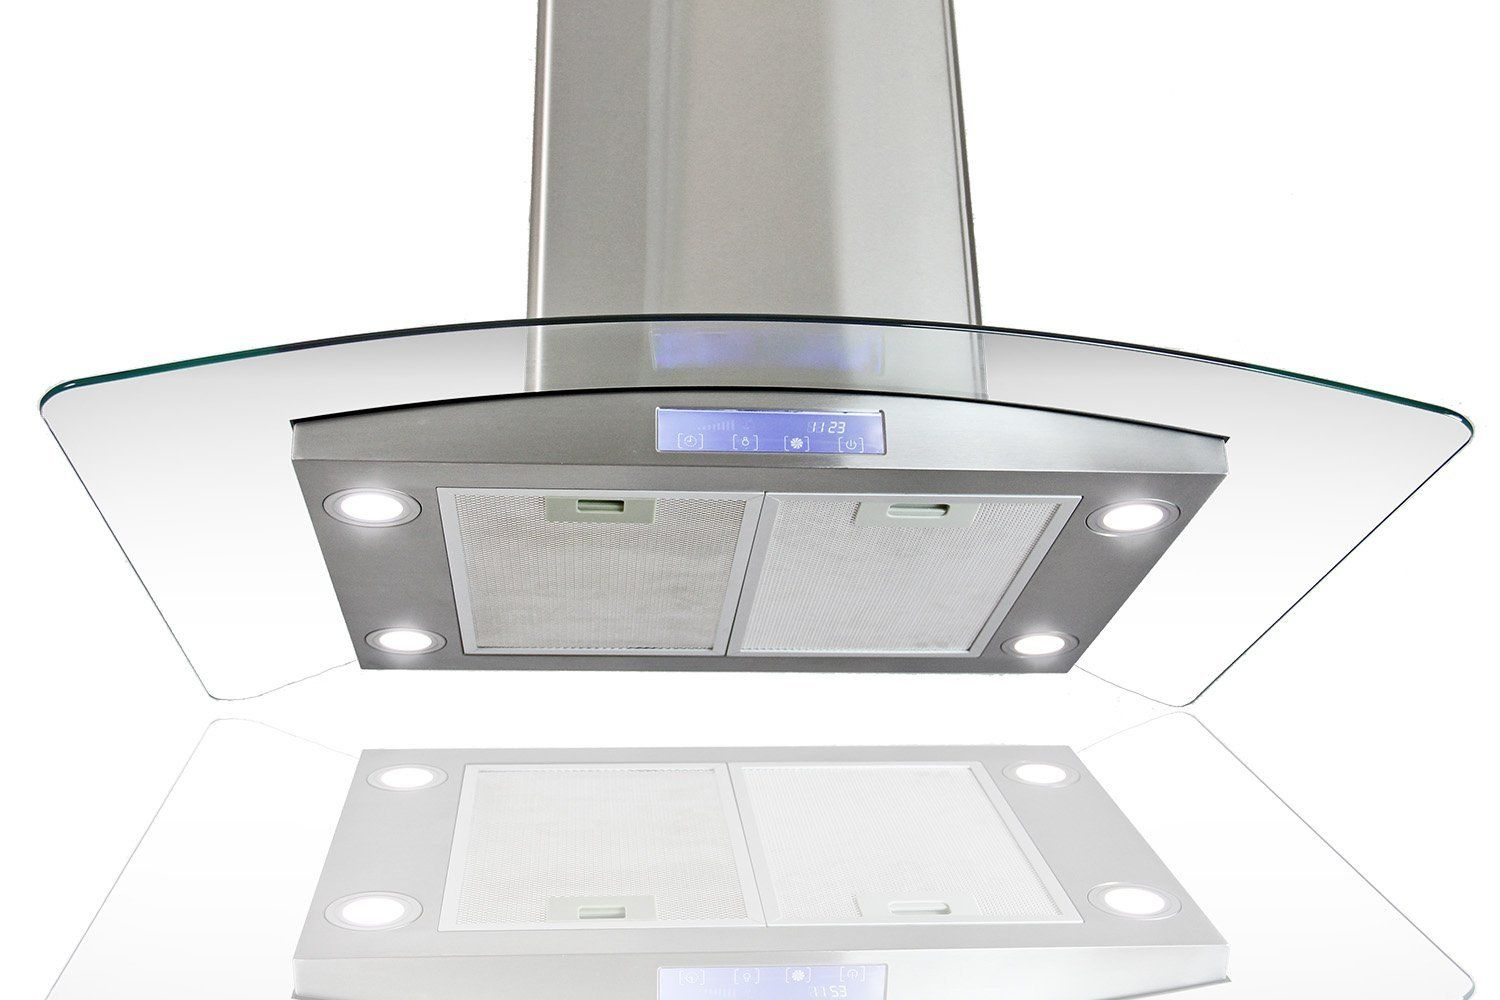 Firebird Stainless Steel 36 Euro Style Island Mount Range Hood Led Screen This Is An Amazon Affiliate Link Ch Stainless Steel Island Range Hood Led Lights